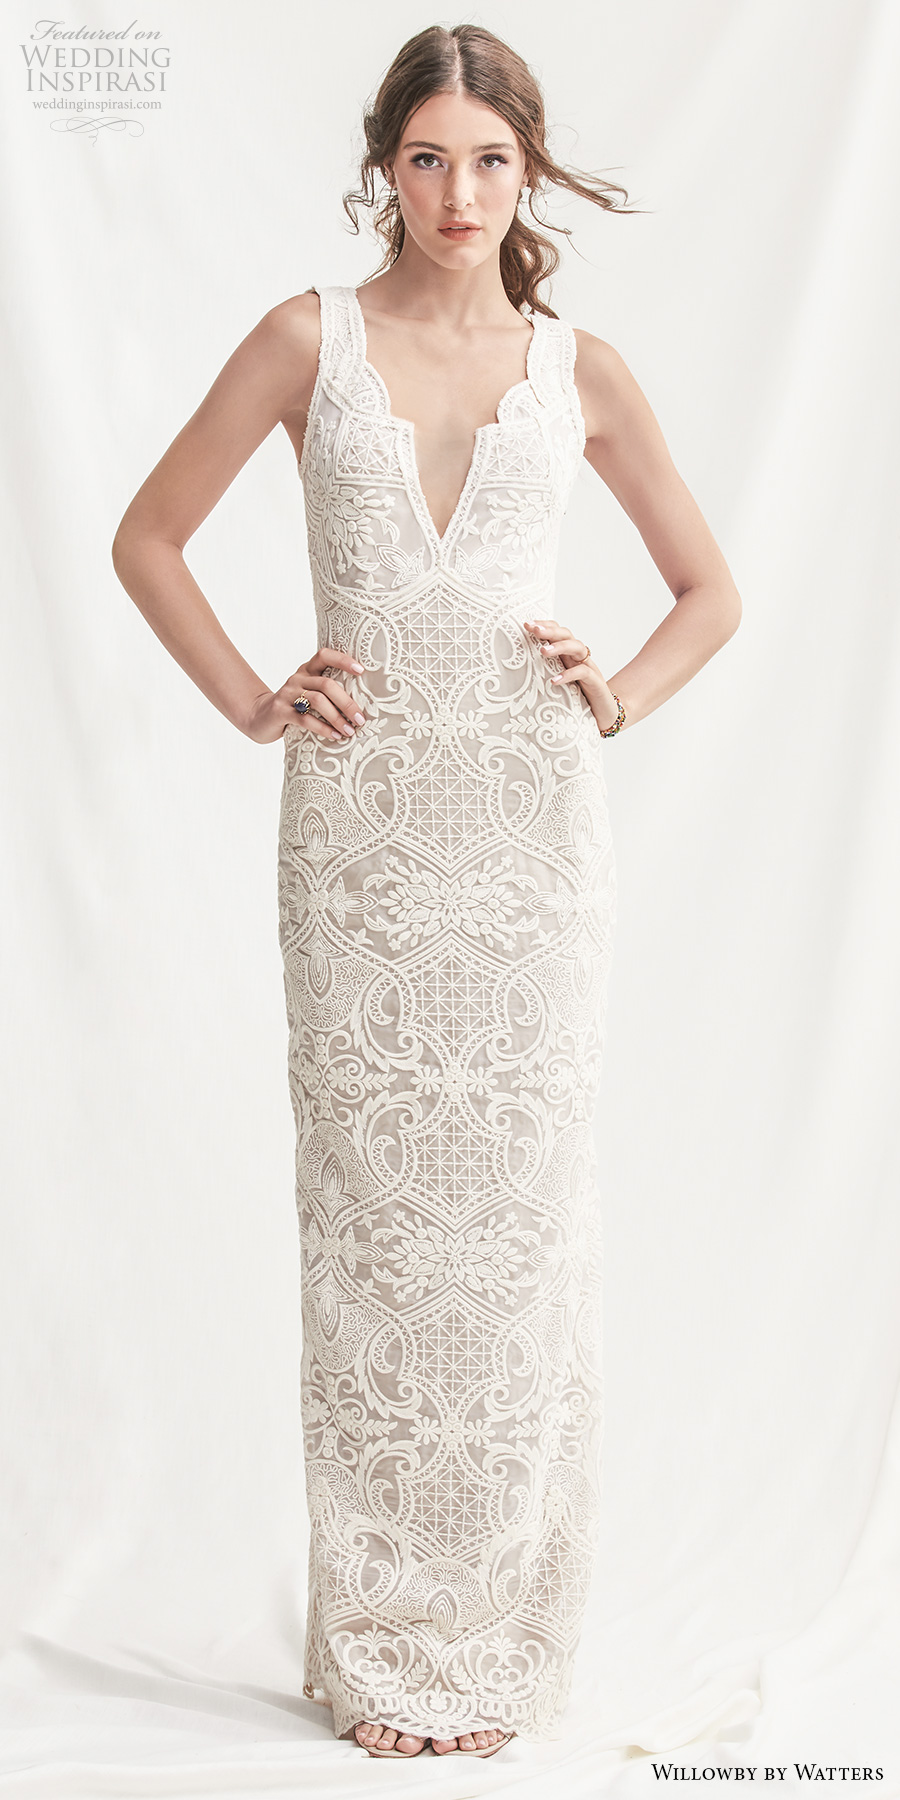 willowby by watters spring 2019 bridal sleeveless deep v neck full embellishment elegant lace sheath wedding dress v back sweep train (8) mv